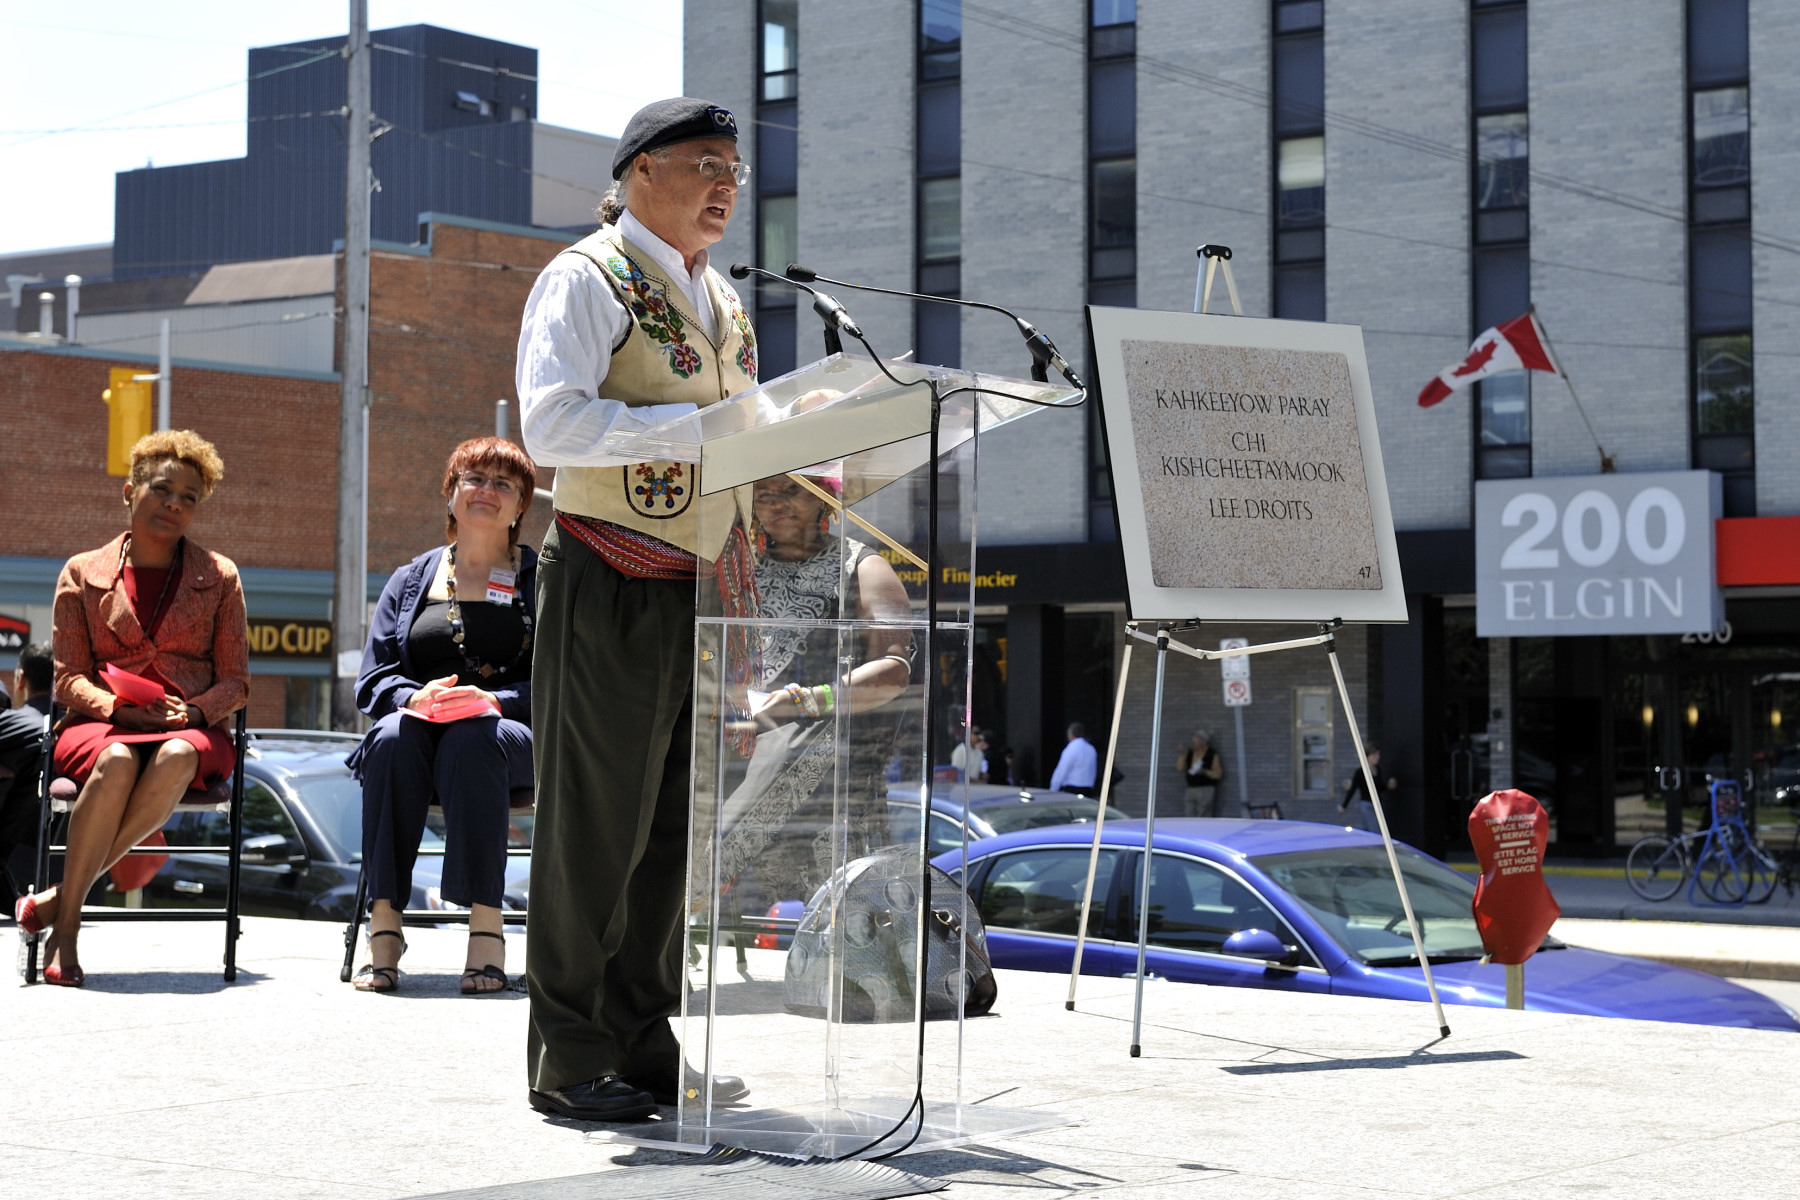 President Clément Chartier, Métis National Council, read the plaques in Michif.